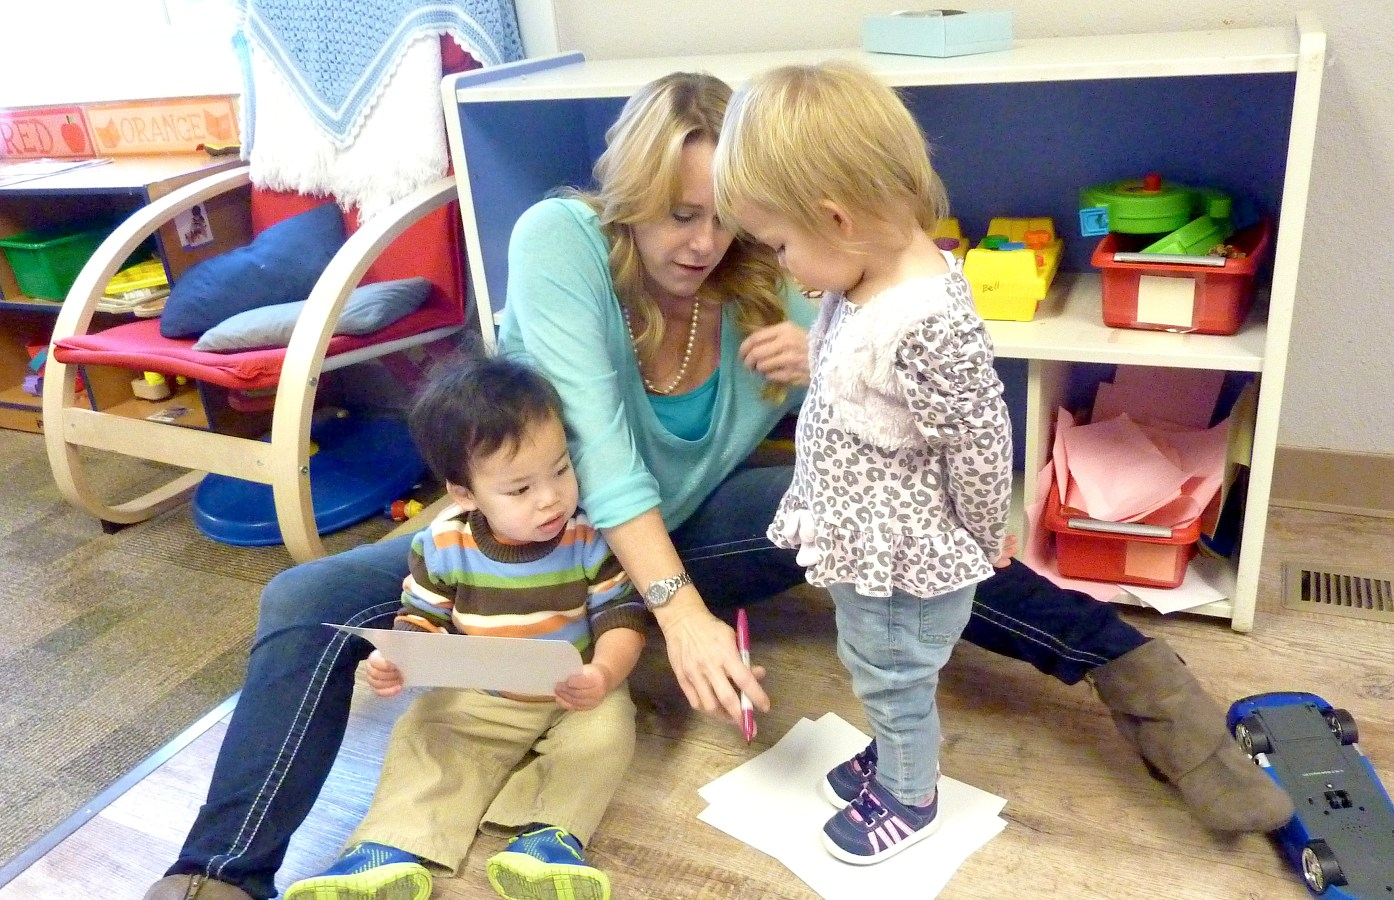 Jodi Bell, lead toddler teacher at Teaching Tree Early Childhood Learning Center in Loveland, outlines a child's foot. (Ann Schimke/Chalkbeat)